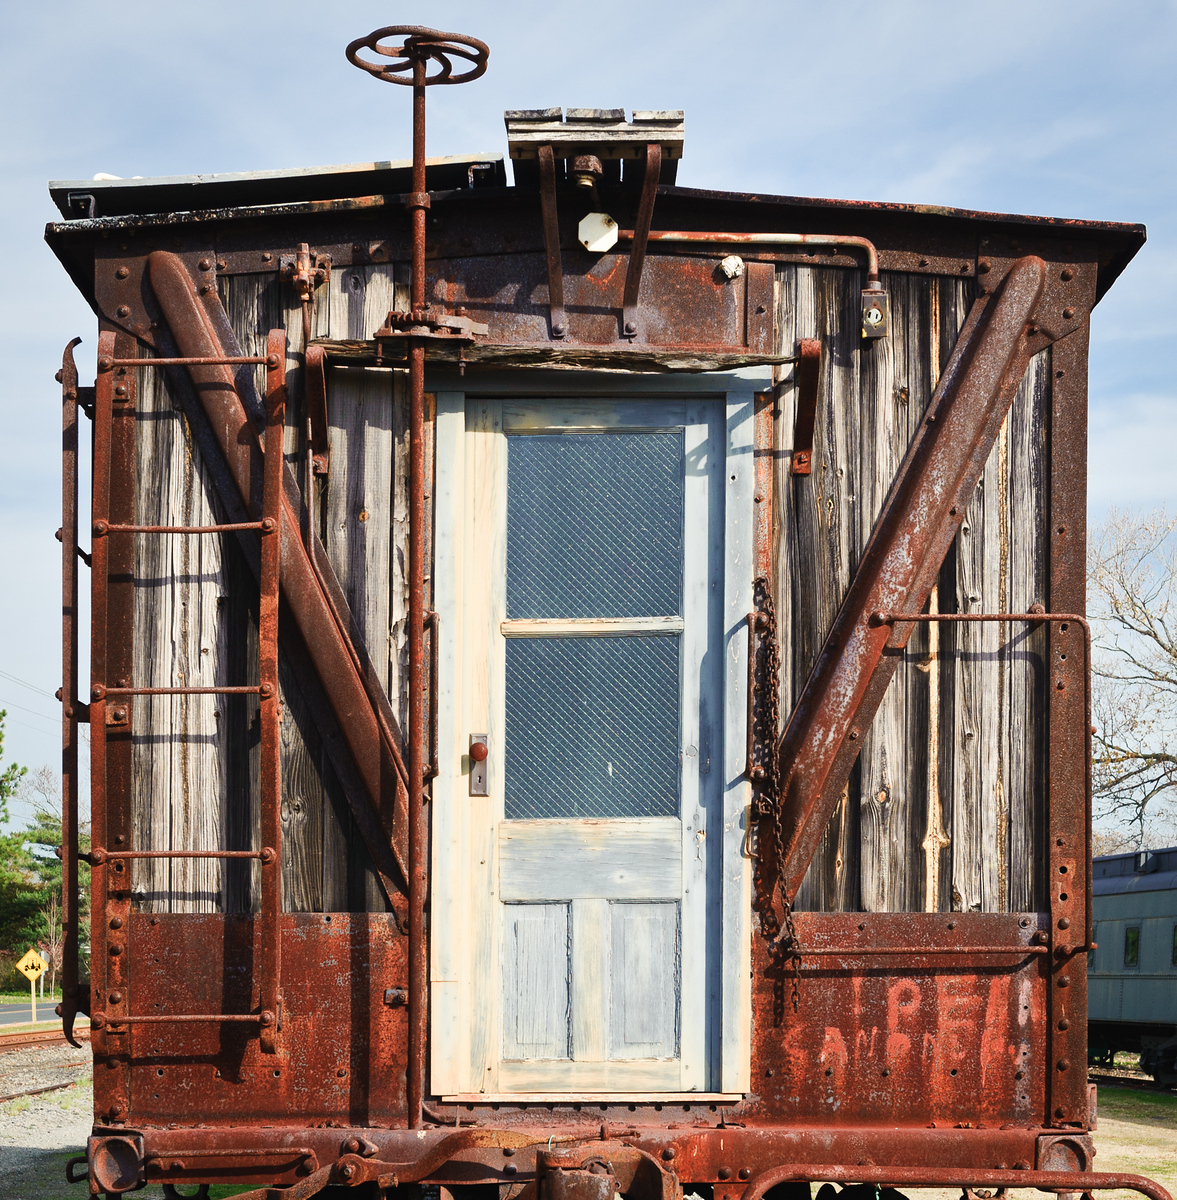 Old Wooden Caboose